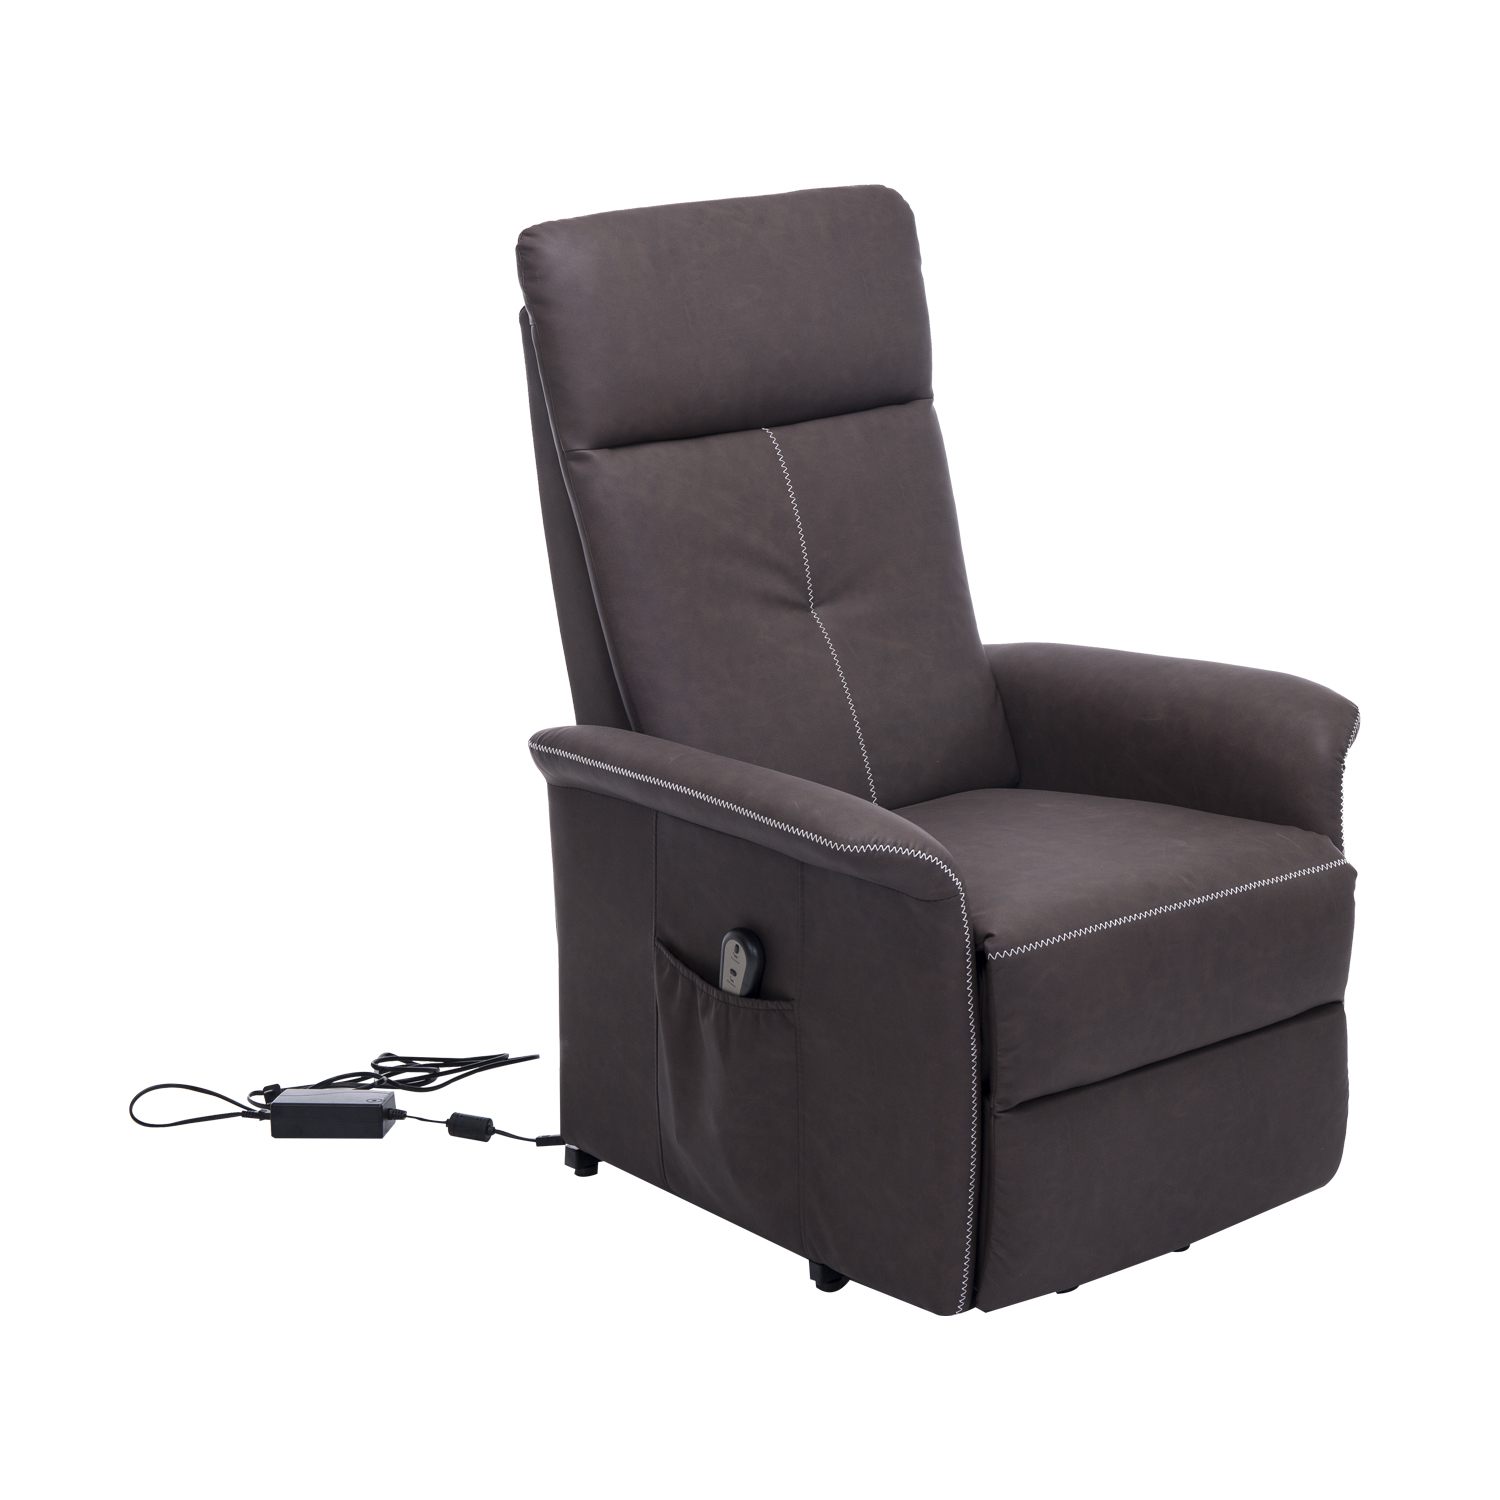 Homcom 45 Quot 3 Position Electric Lift Chair Recliner Brown